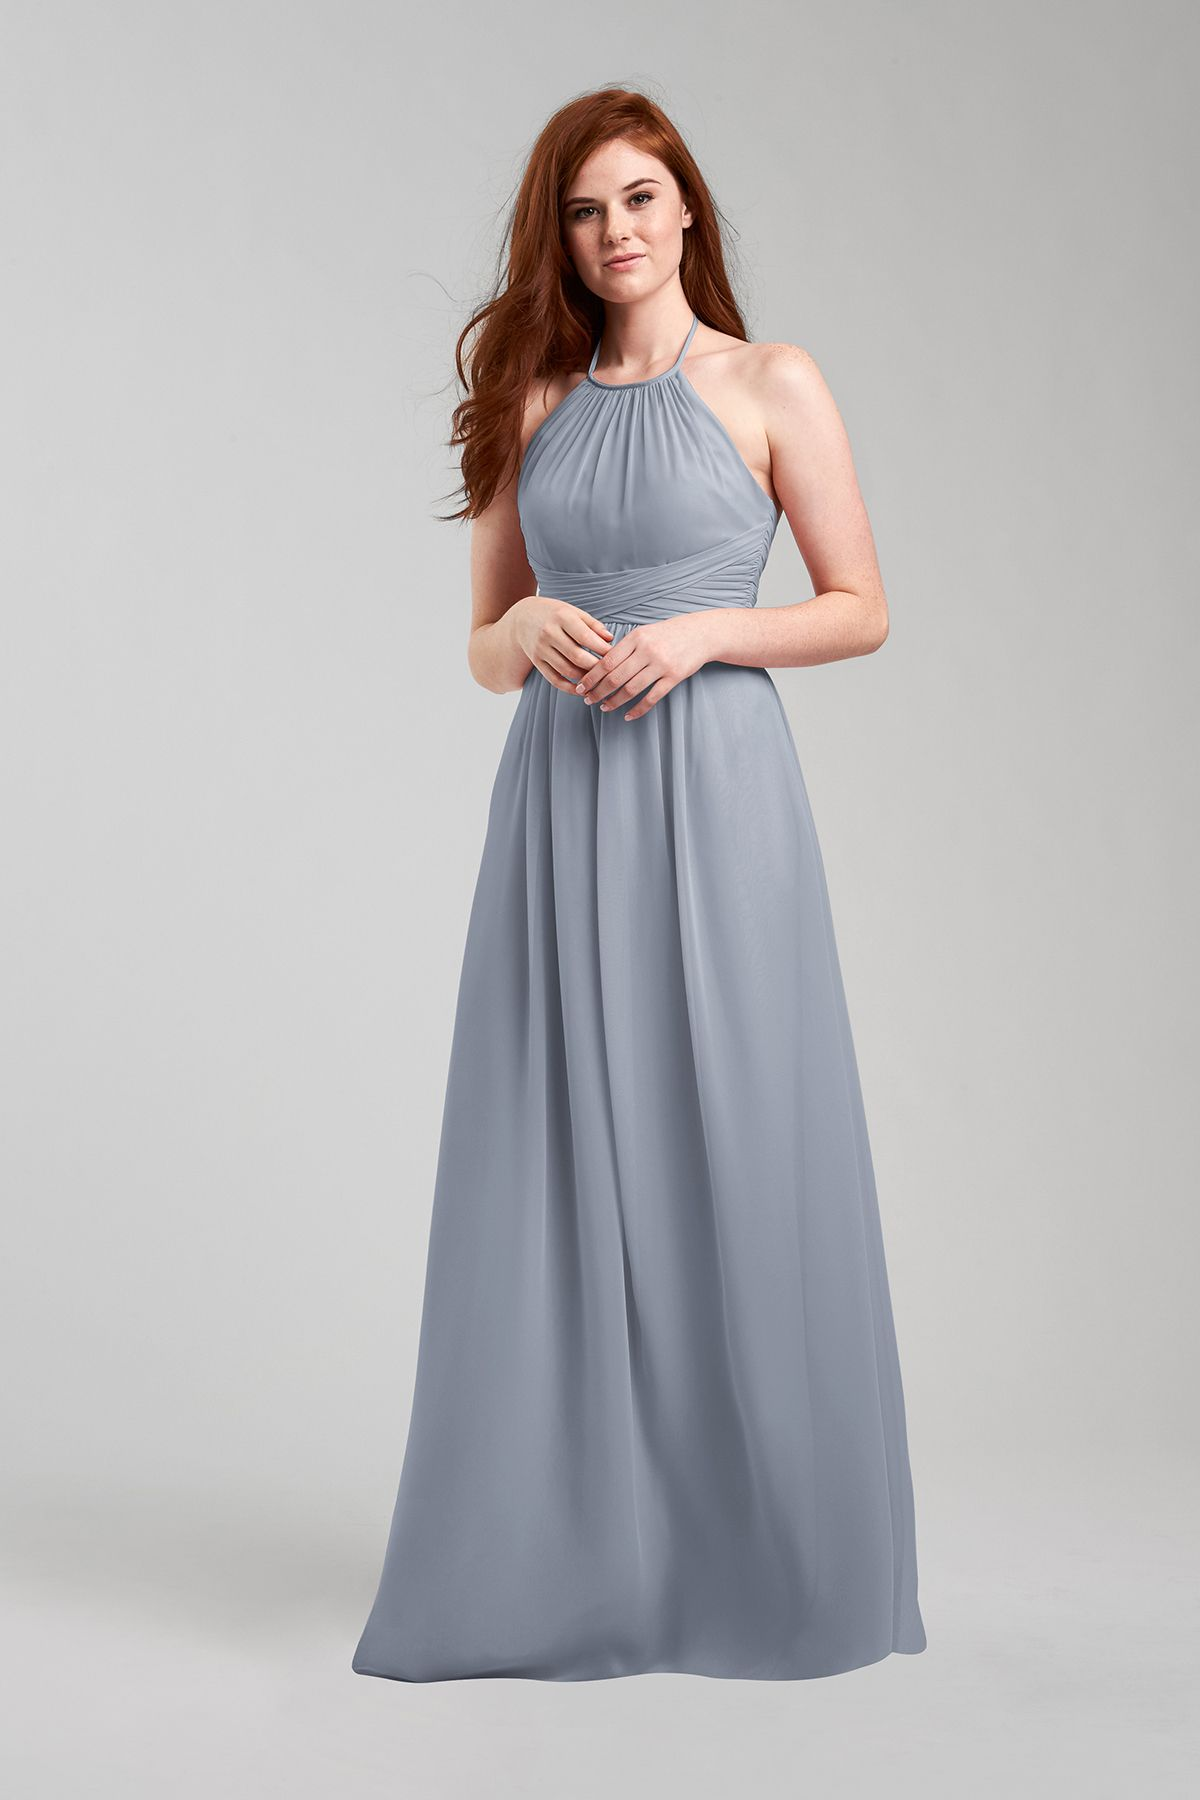 7d4d0c58a9ab6 Diana Bridesmaid Dress in Mystic in Chiffon   andie's bridesmaids ...